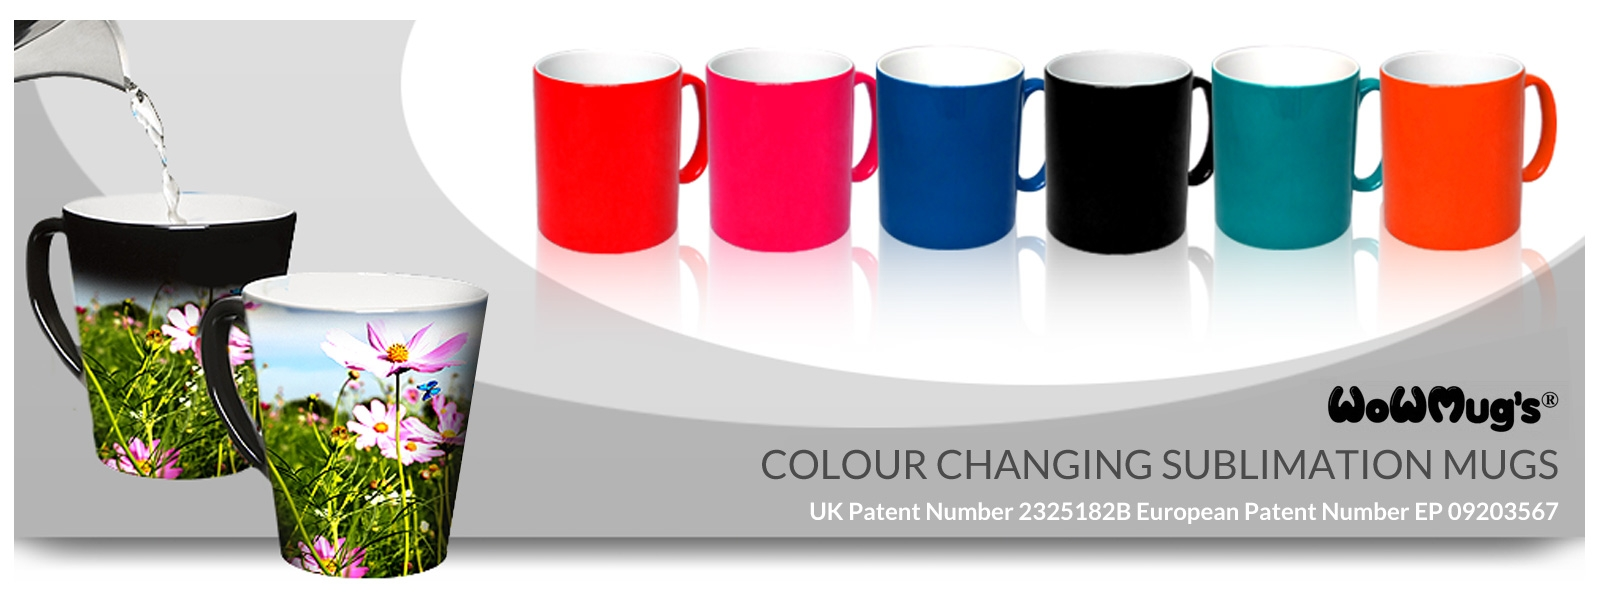 Colour Changing Sublimation Mugs